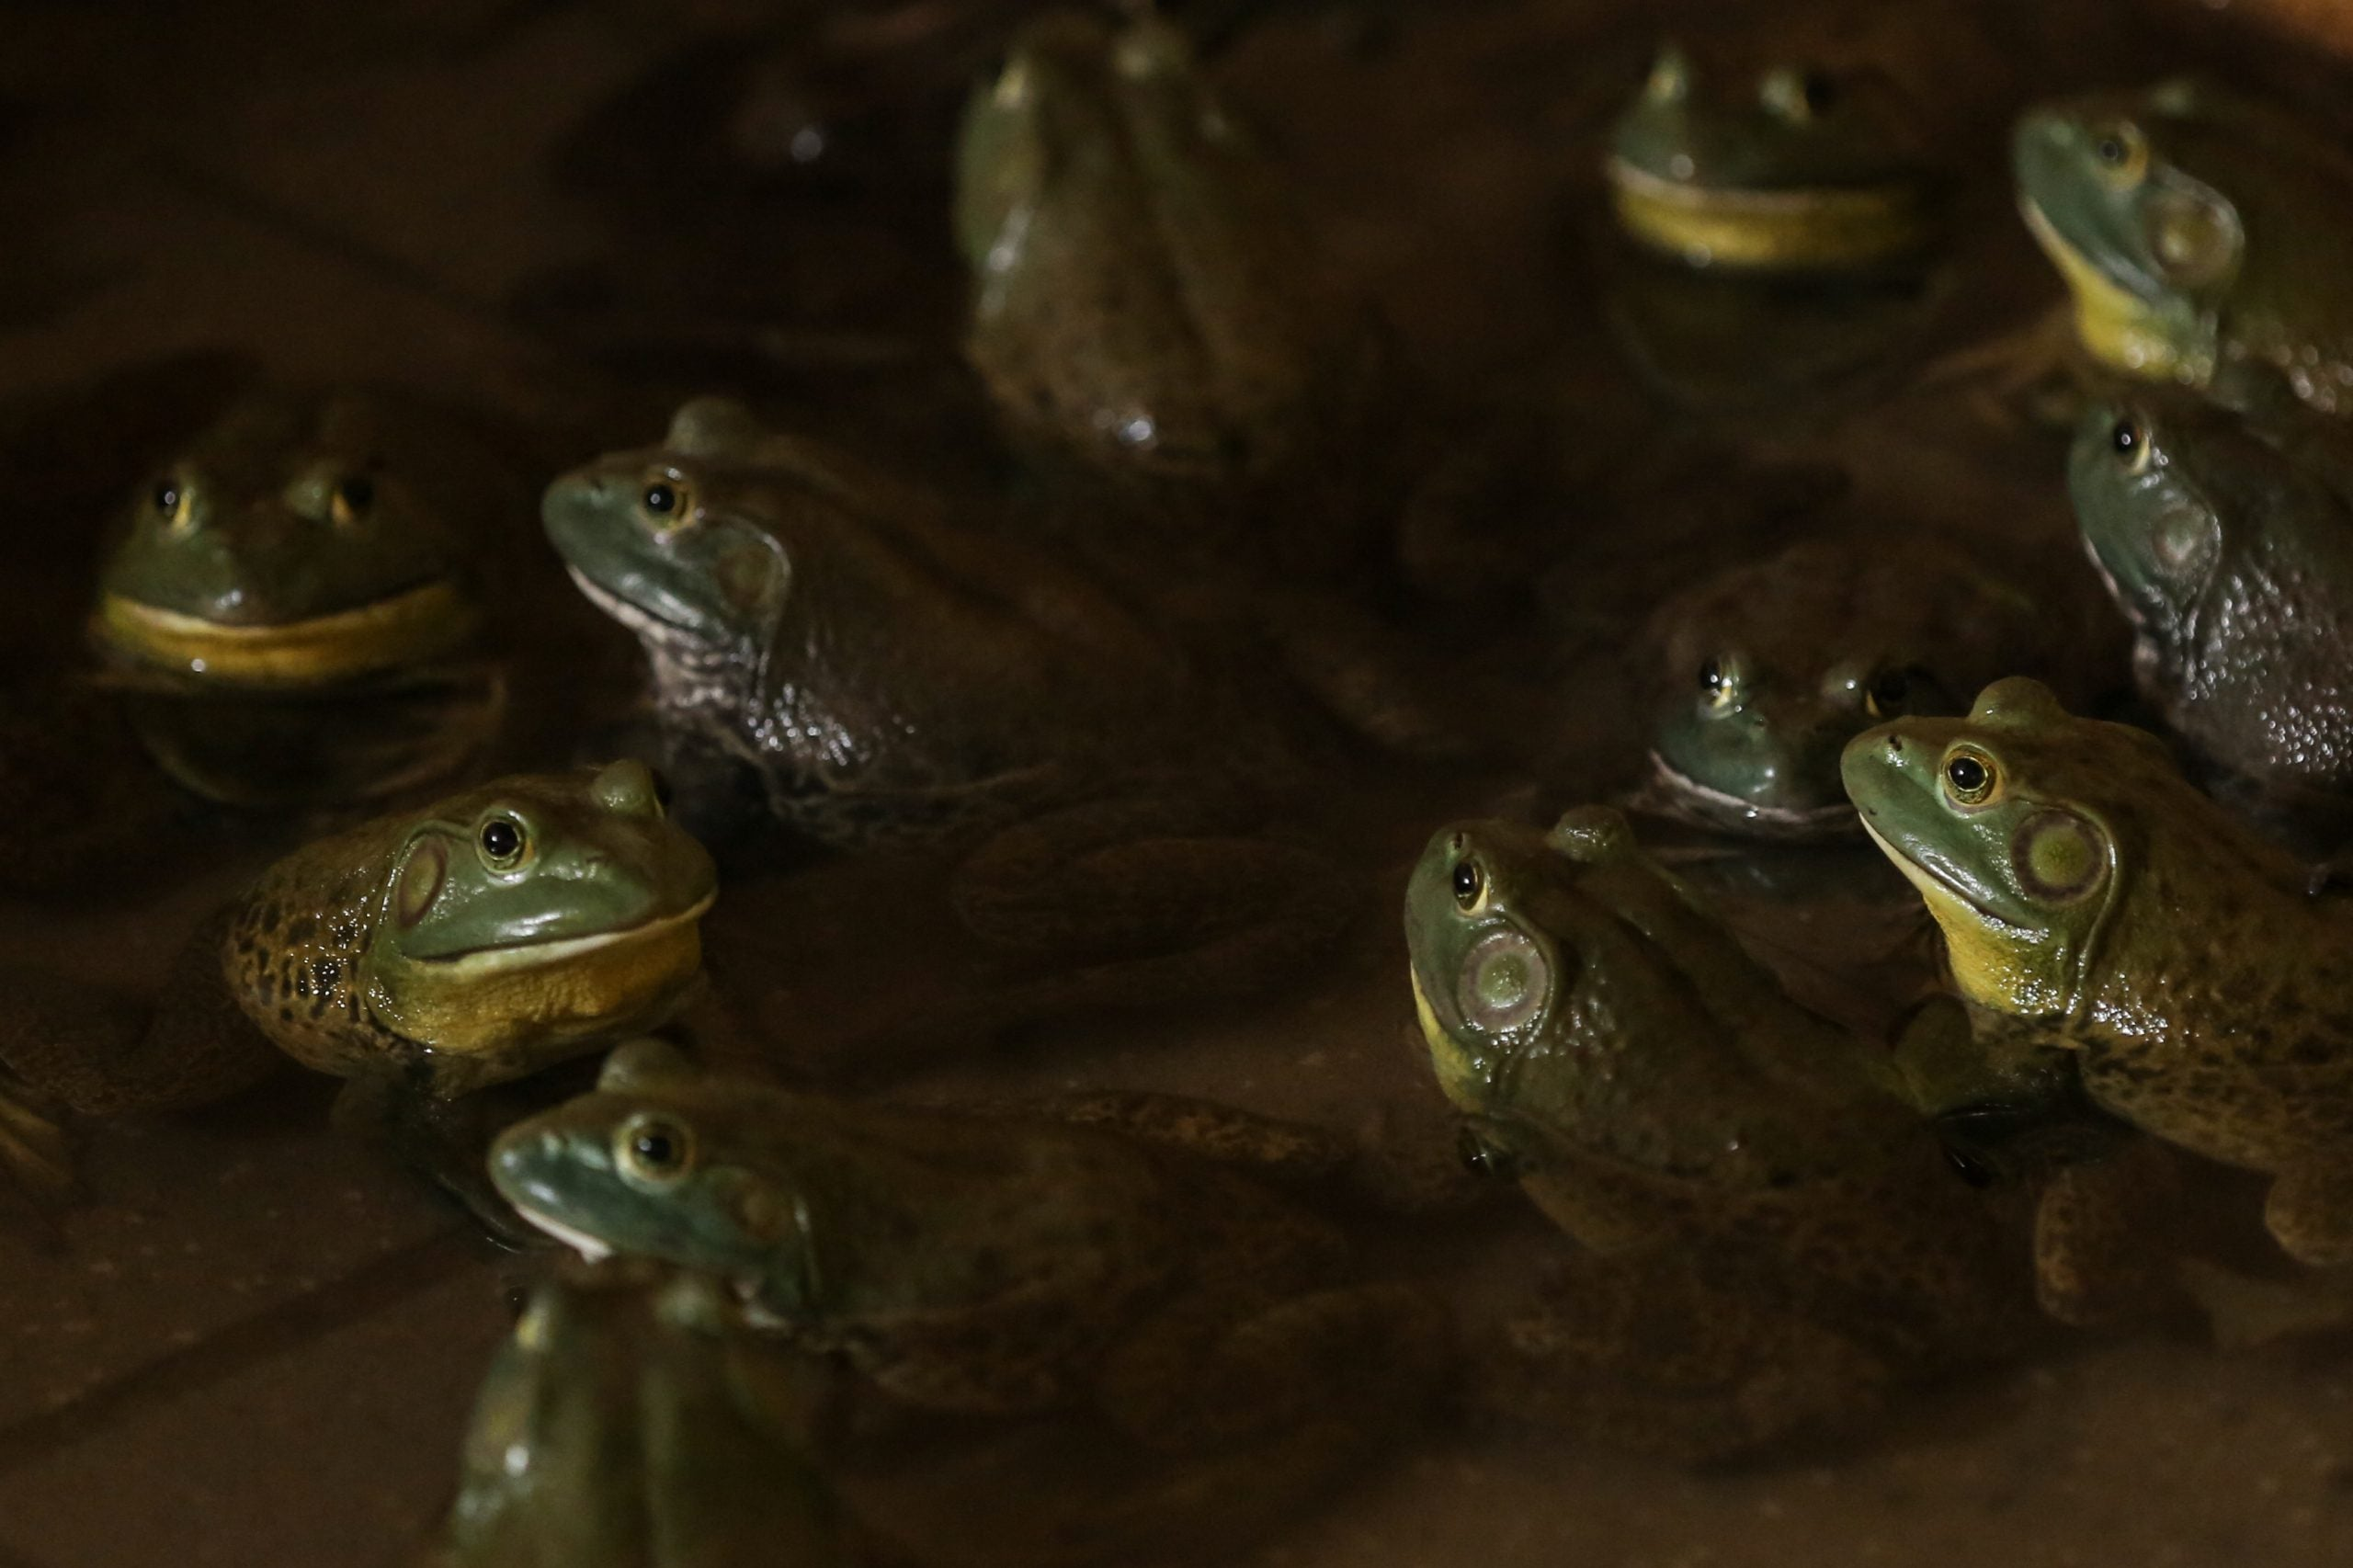 We are all frogs in a pan of water, and coronavirus reminds us that it is heating up dangerously